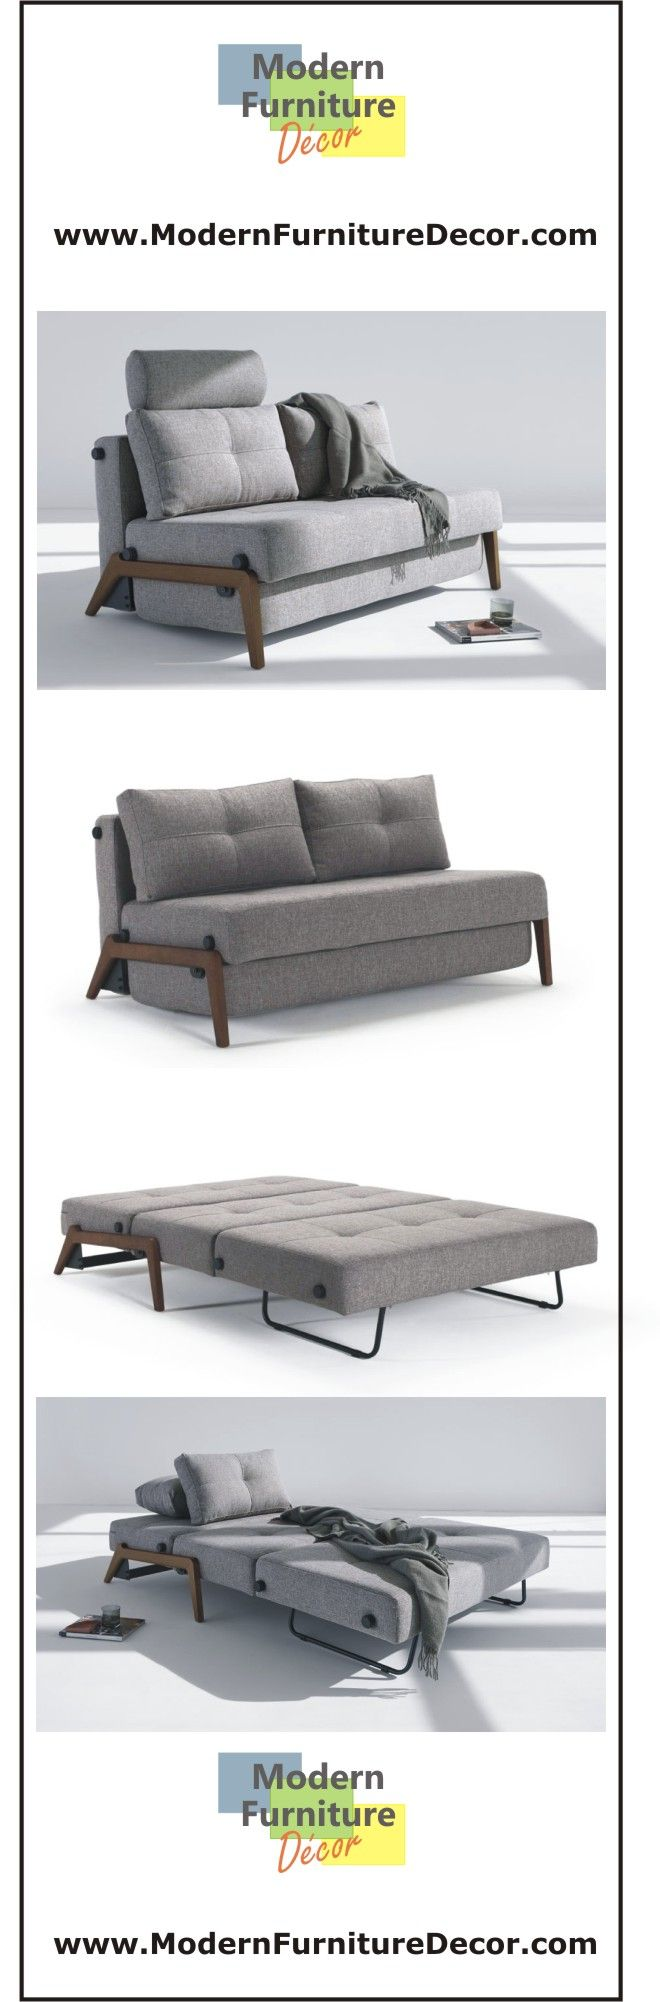 The Modern Cubed Deluxe Sofa Features An Innovative, Compact Sofa Bed  Design. With Itu0027s